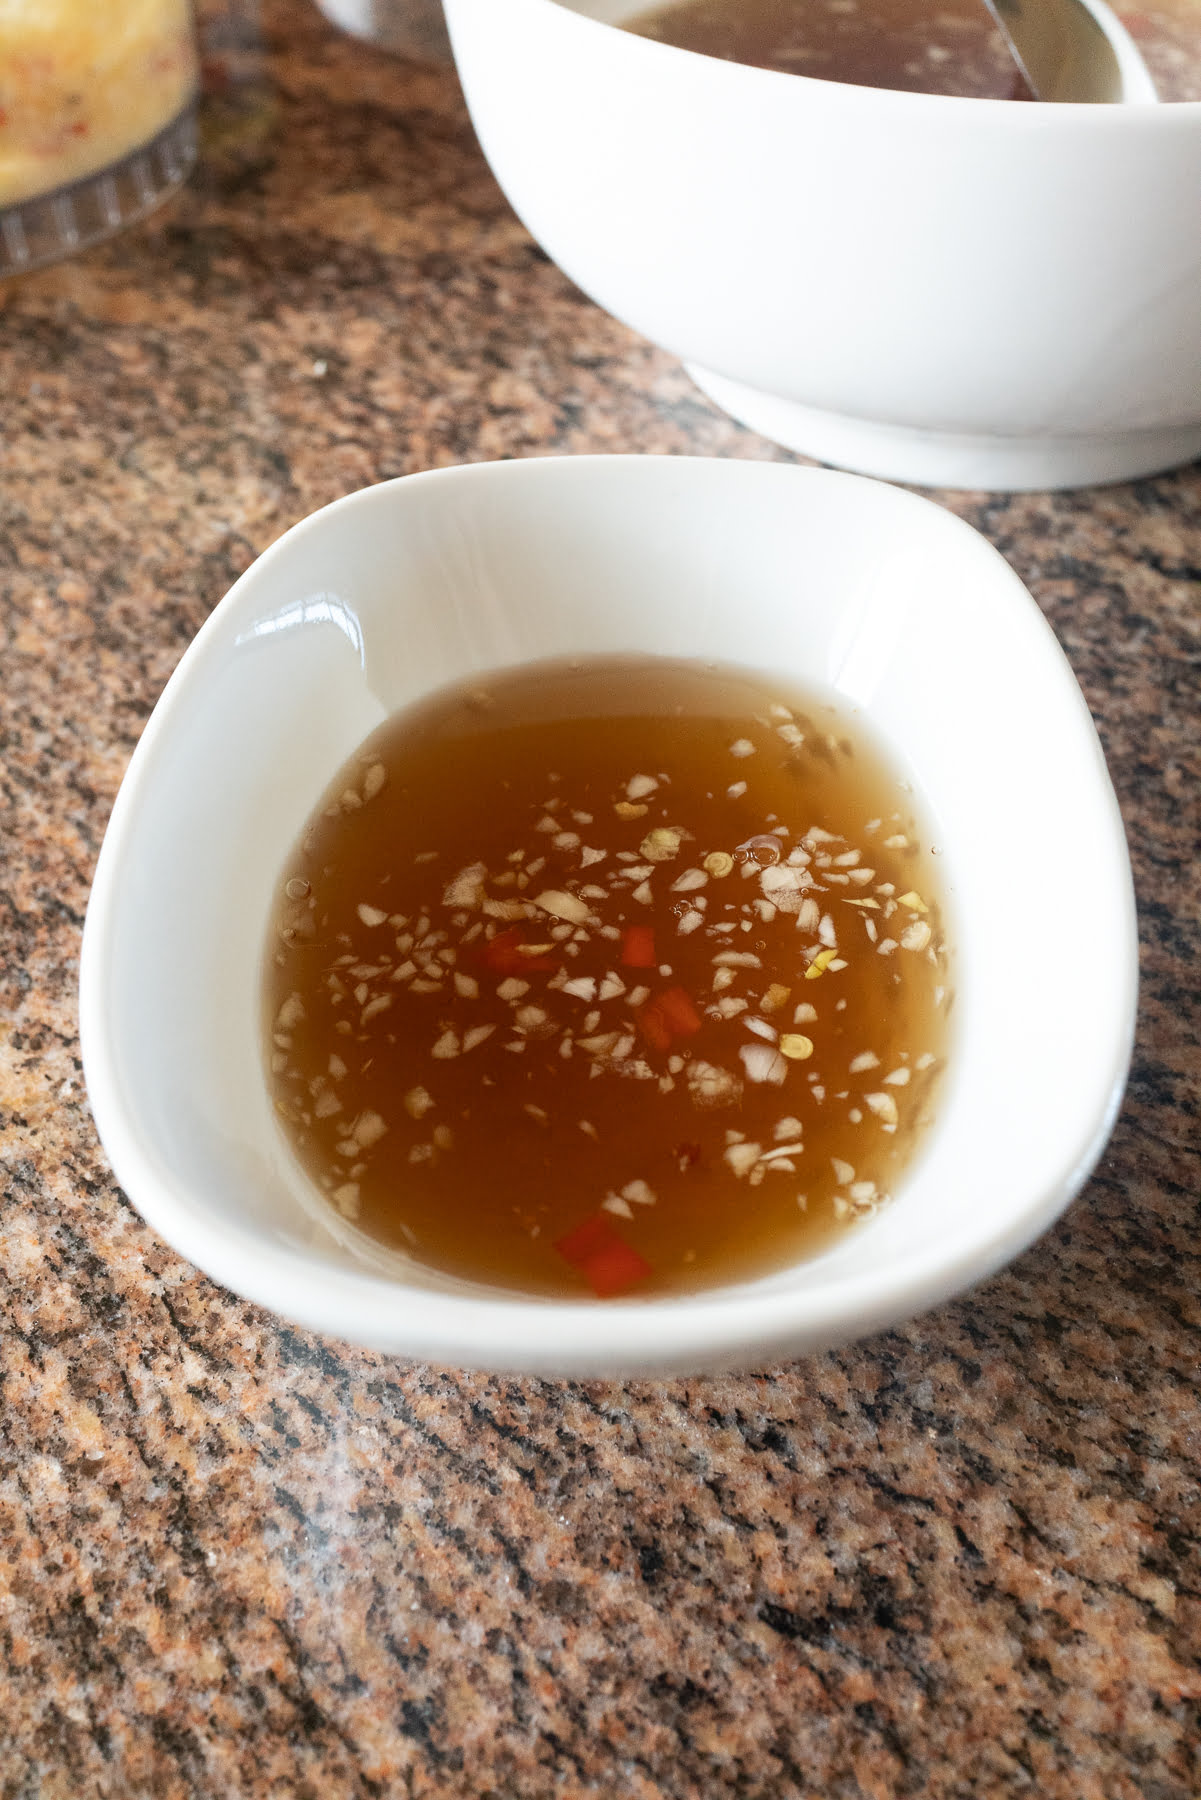 A bowl of Nuoc Cham / Nuoc Mam (Vietnamese Fish Sauce Dipping Sauce).